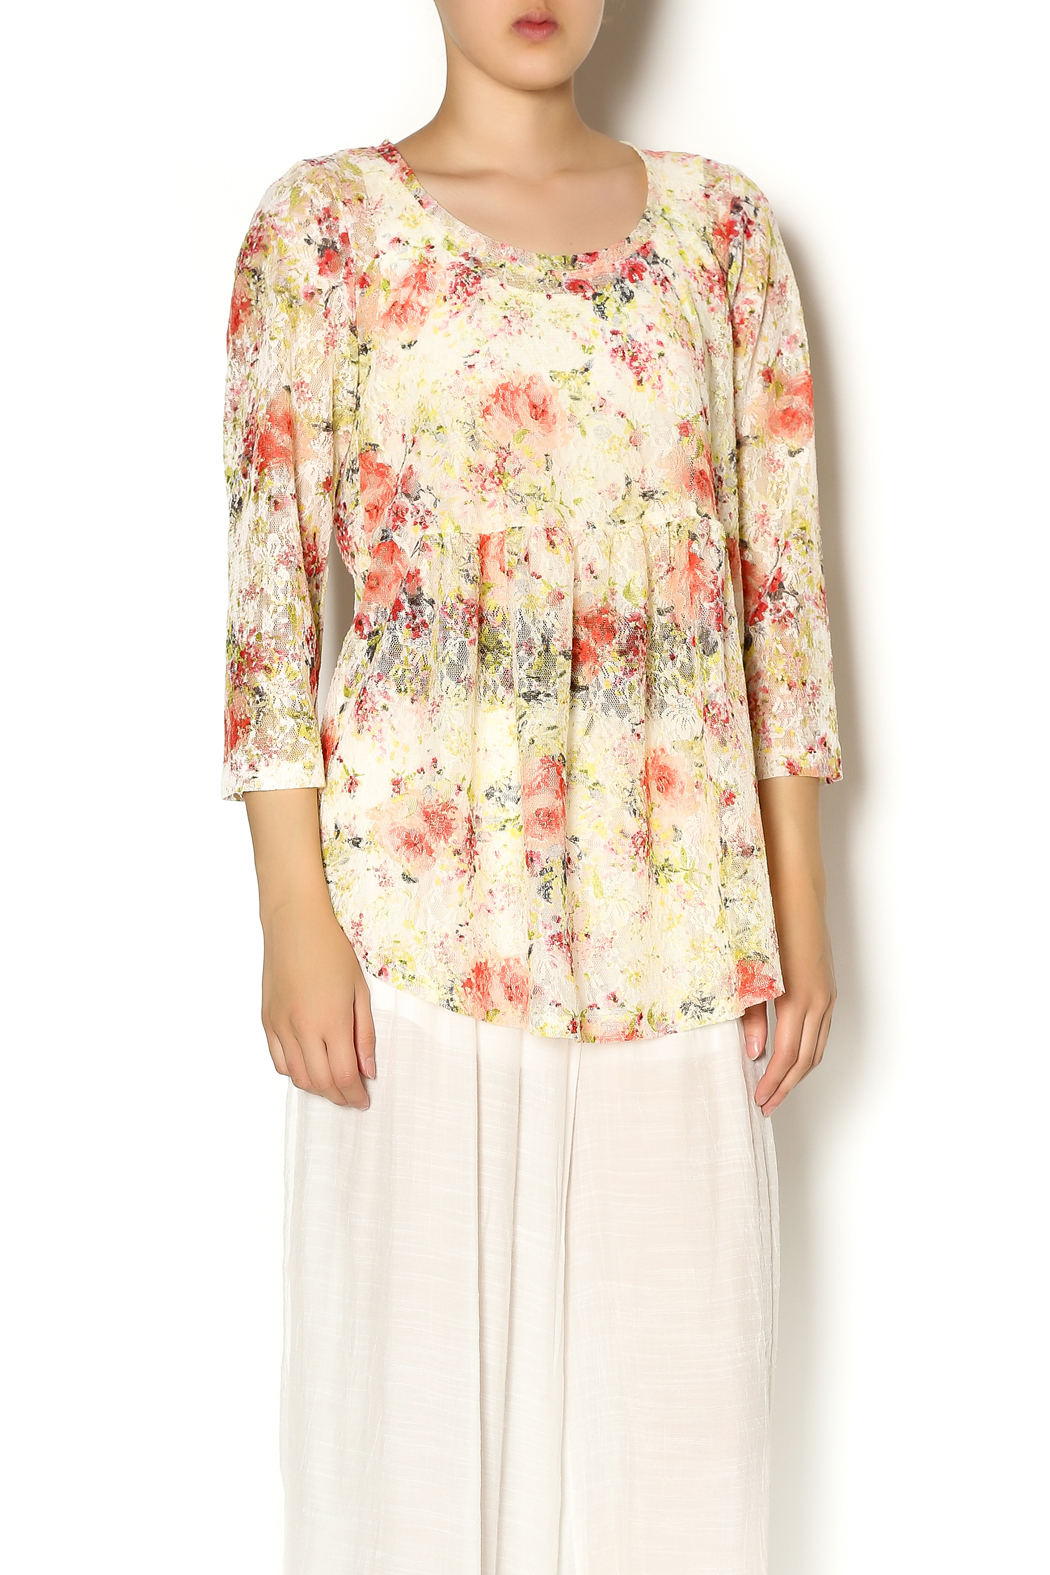 Ivy Jane Floral Nancy Top - Front Cropped Image